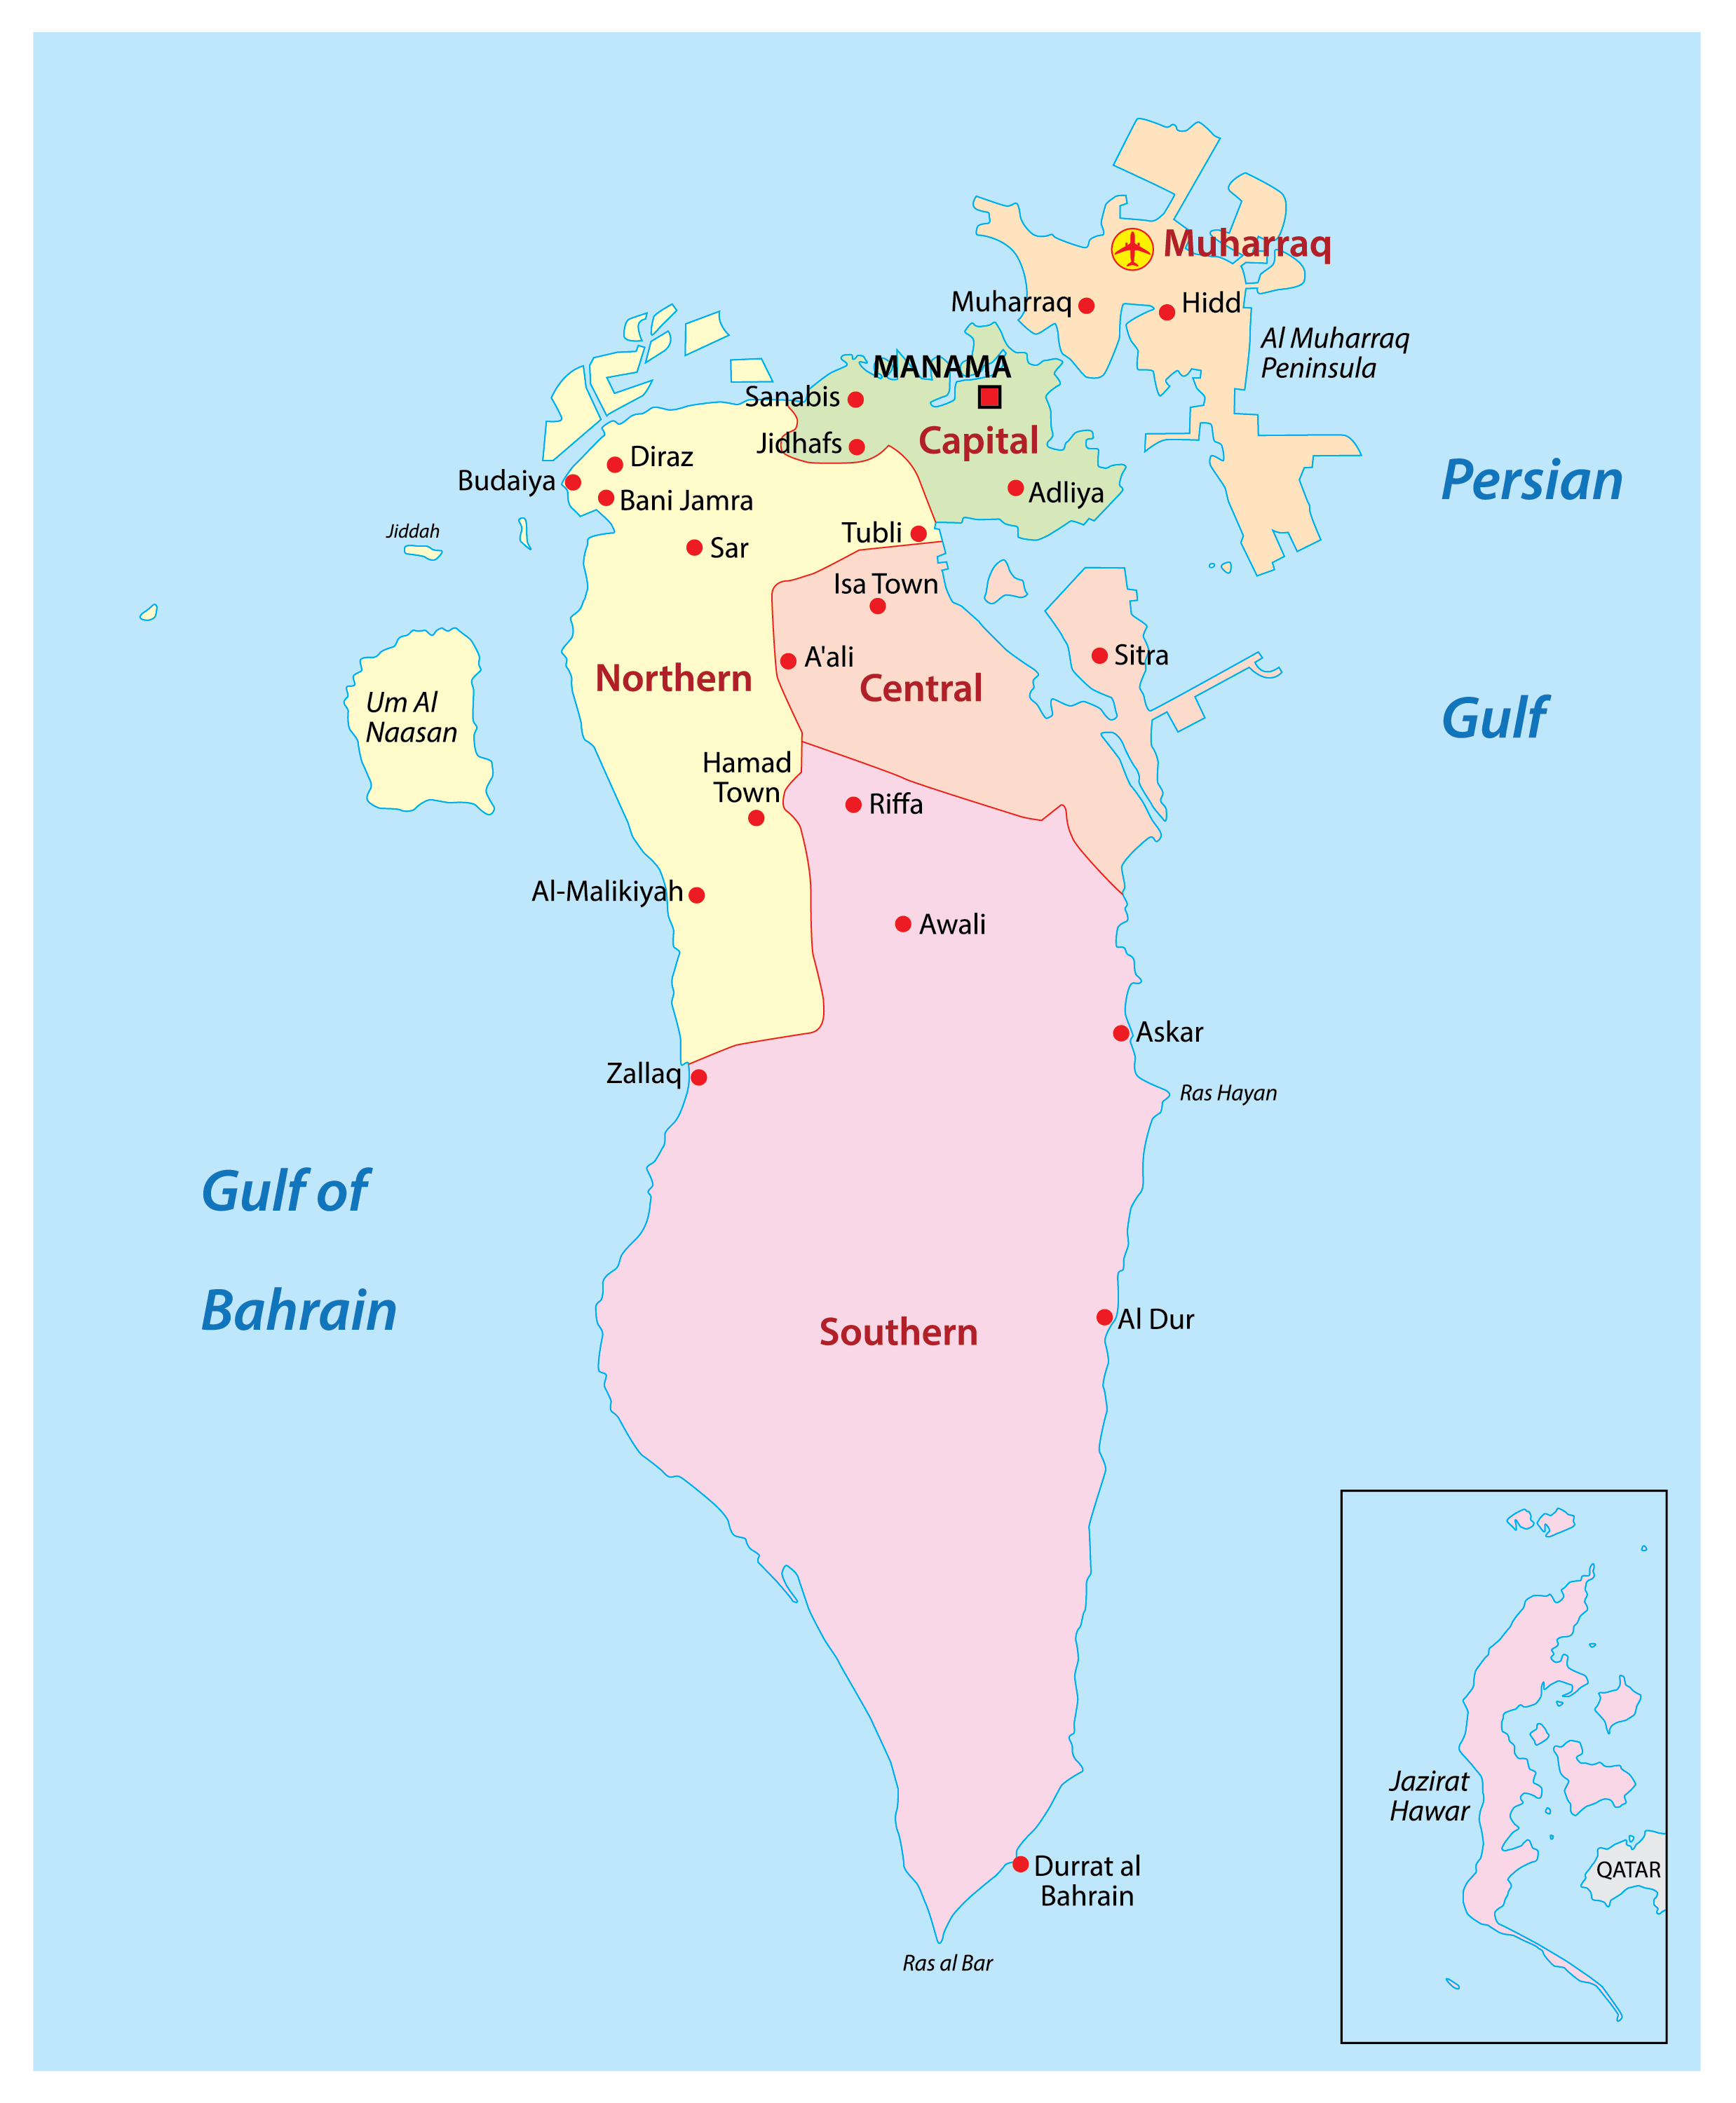 Political Map of Bahrain showing 4 governorates, their capitals, and the national capital of Manama.